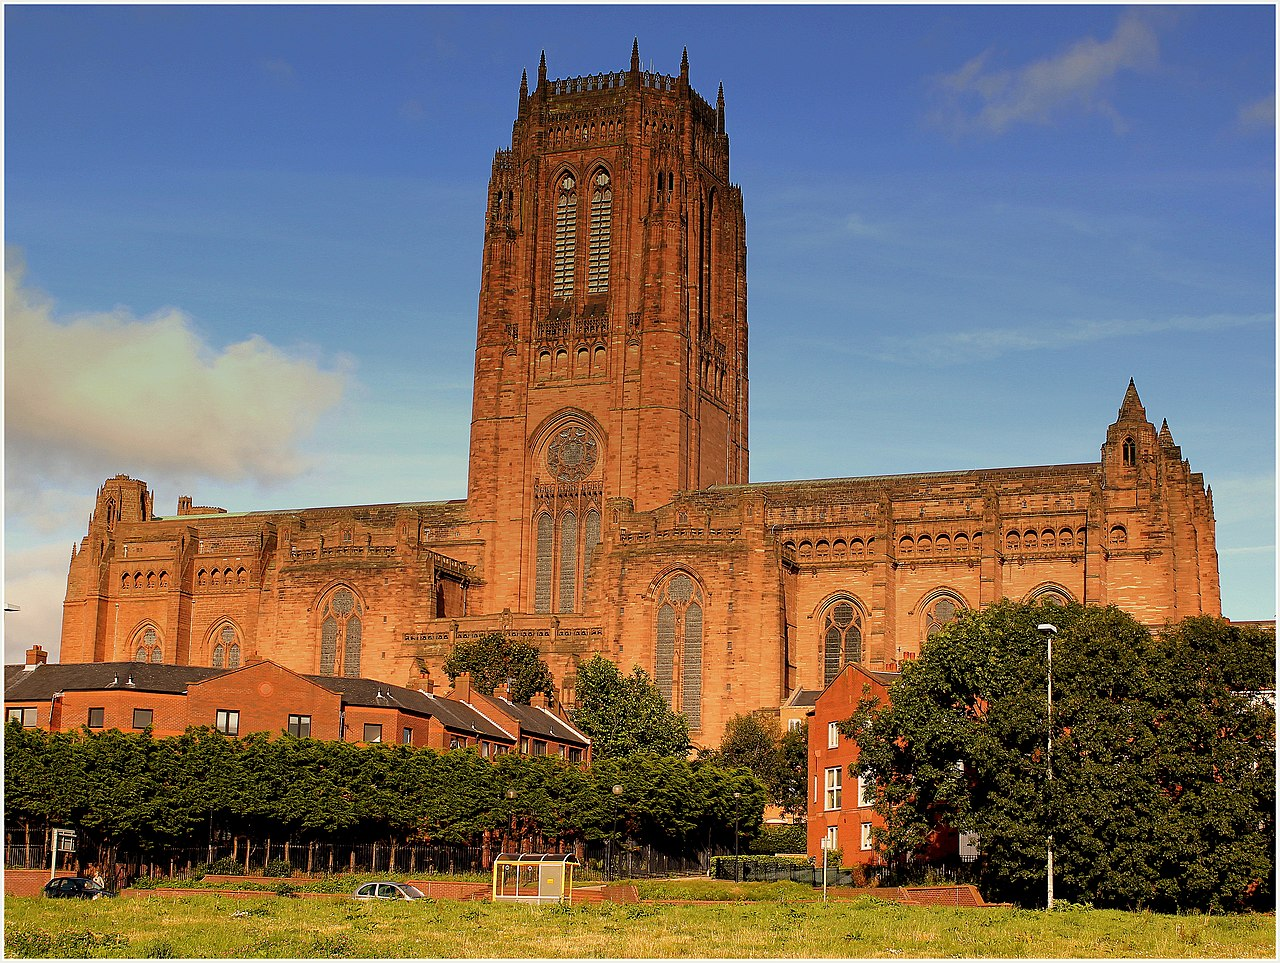 Imposing Liverpool cathedral